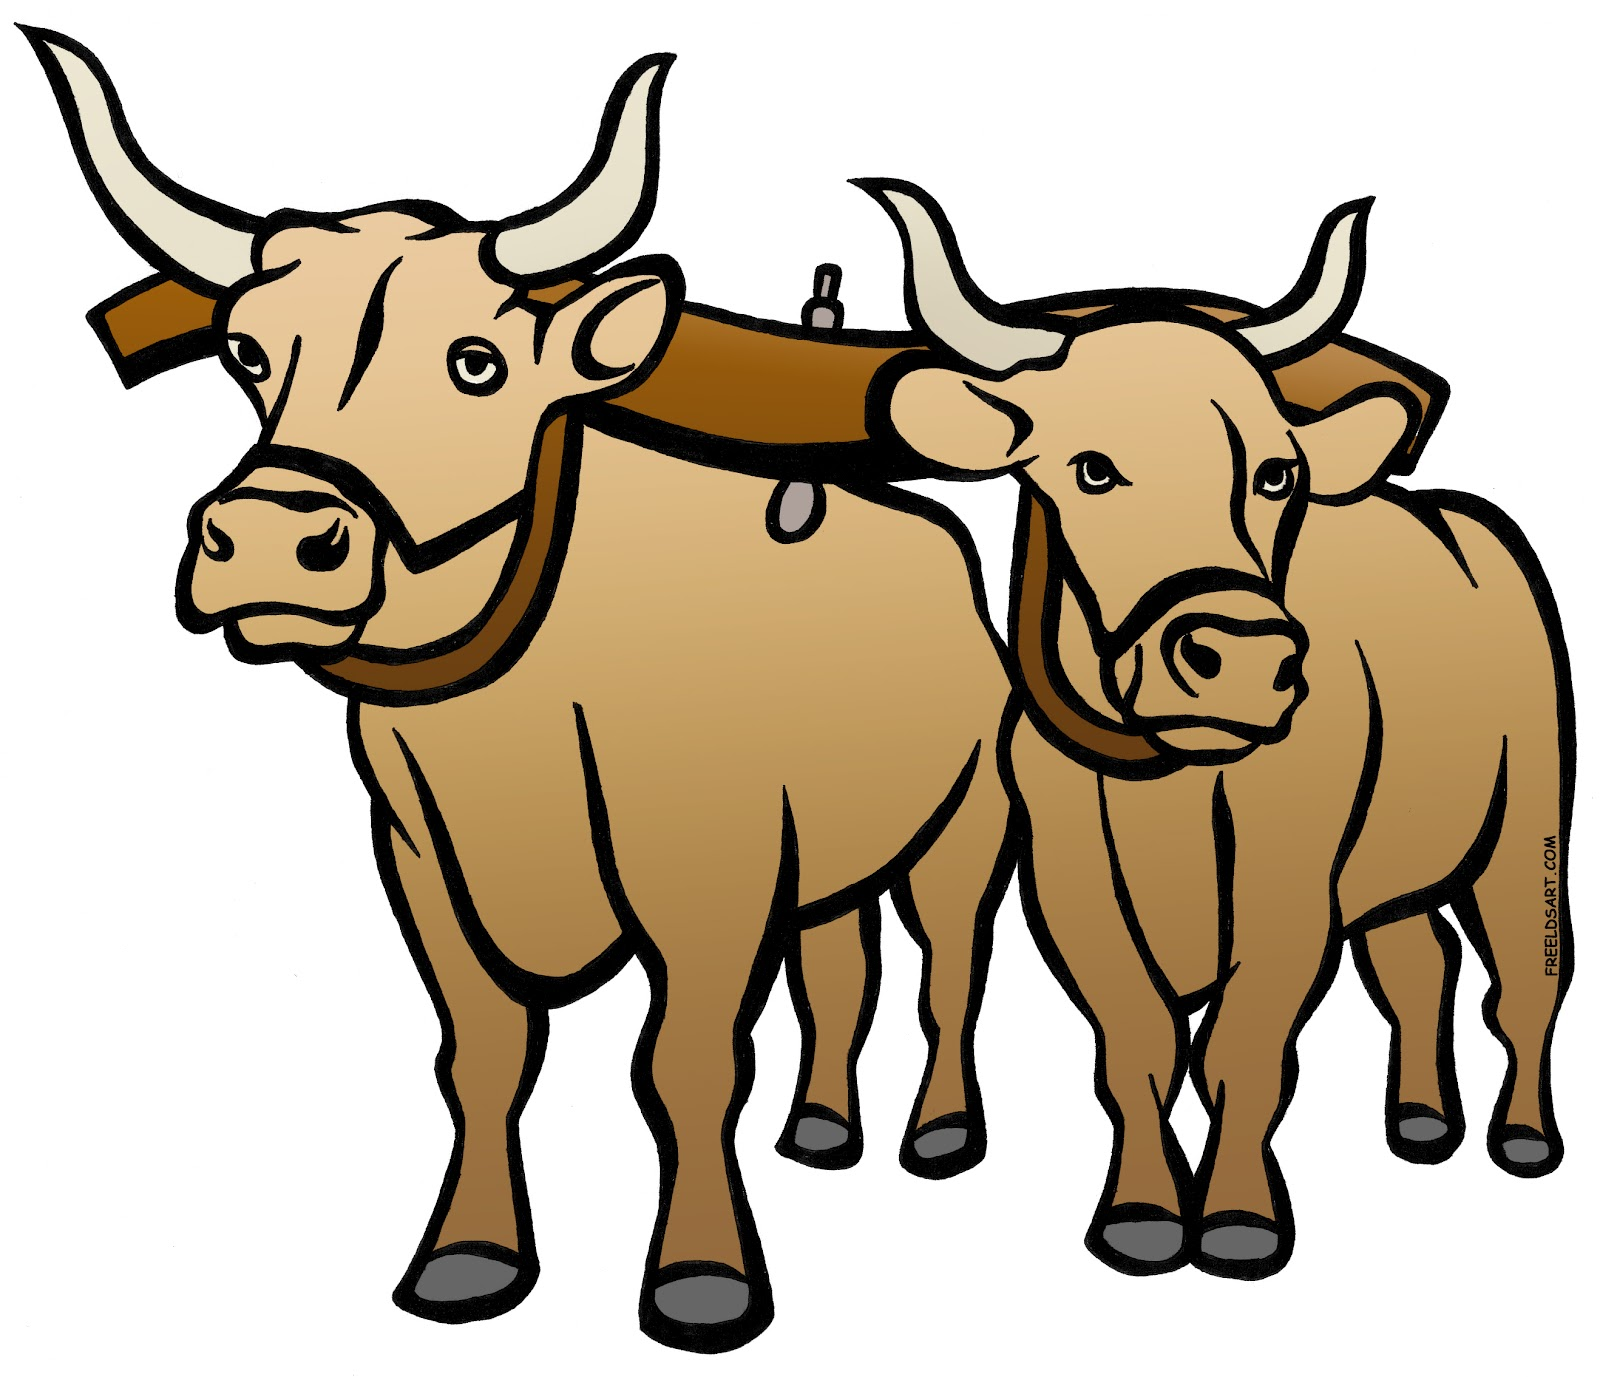 oxen clipart clipground rh clipground com Cartoon Oxen oxen yoke clipart